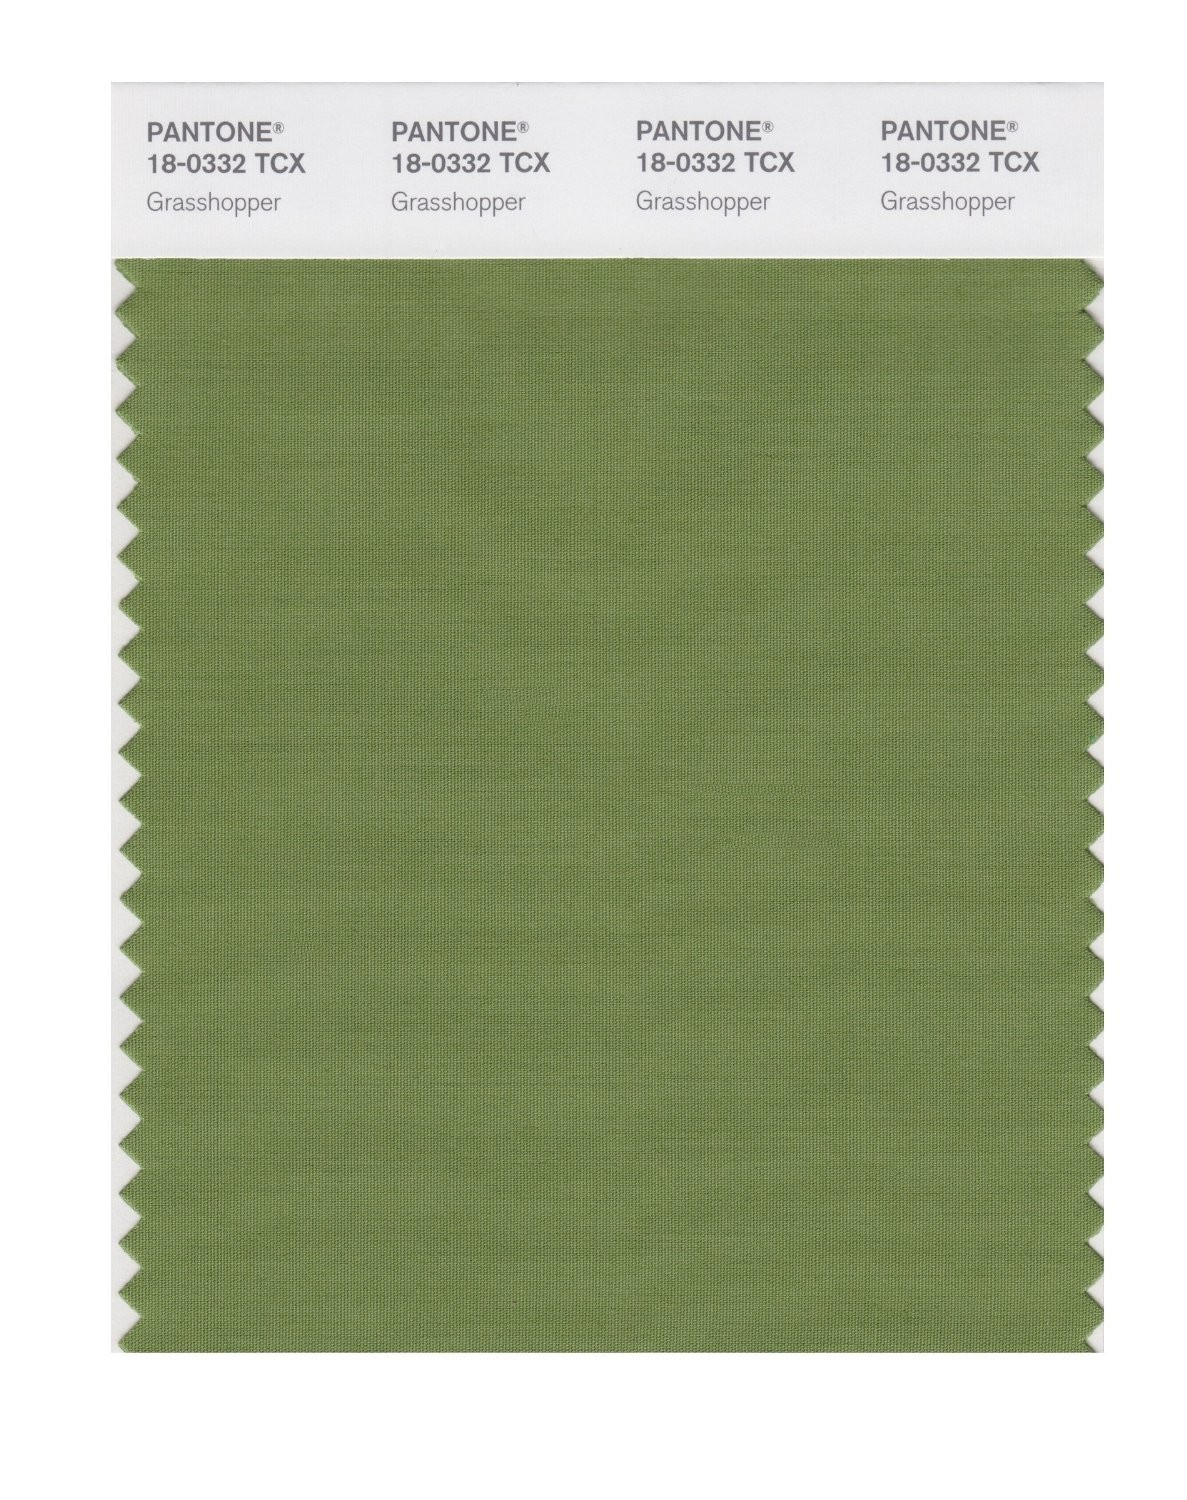 Pantone 18-0332 TCX Swatch Card Grasshopper